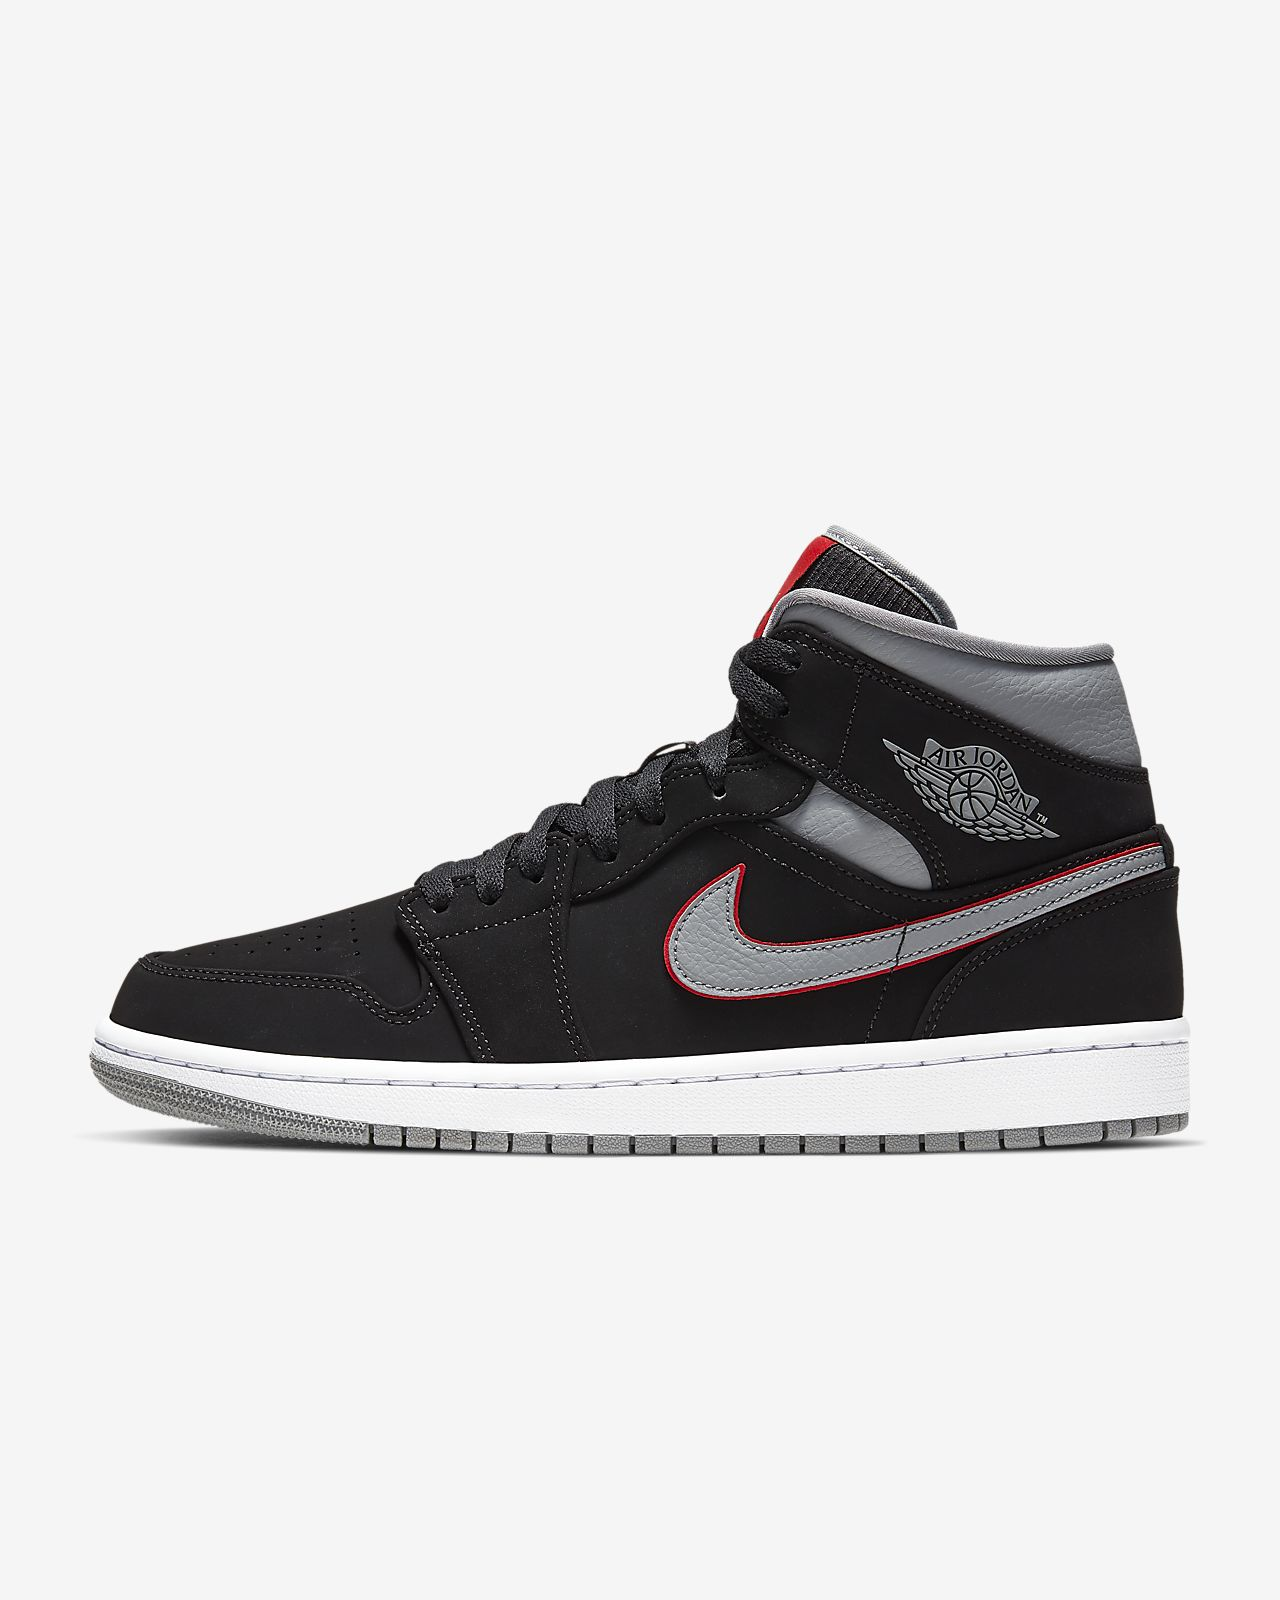 afb03ebca3f6cb Air Jordan 1 Mid Men s Shoe. Nike.com AU